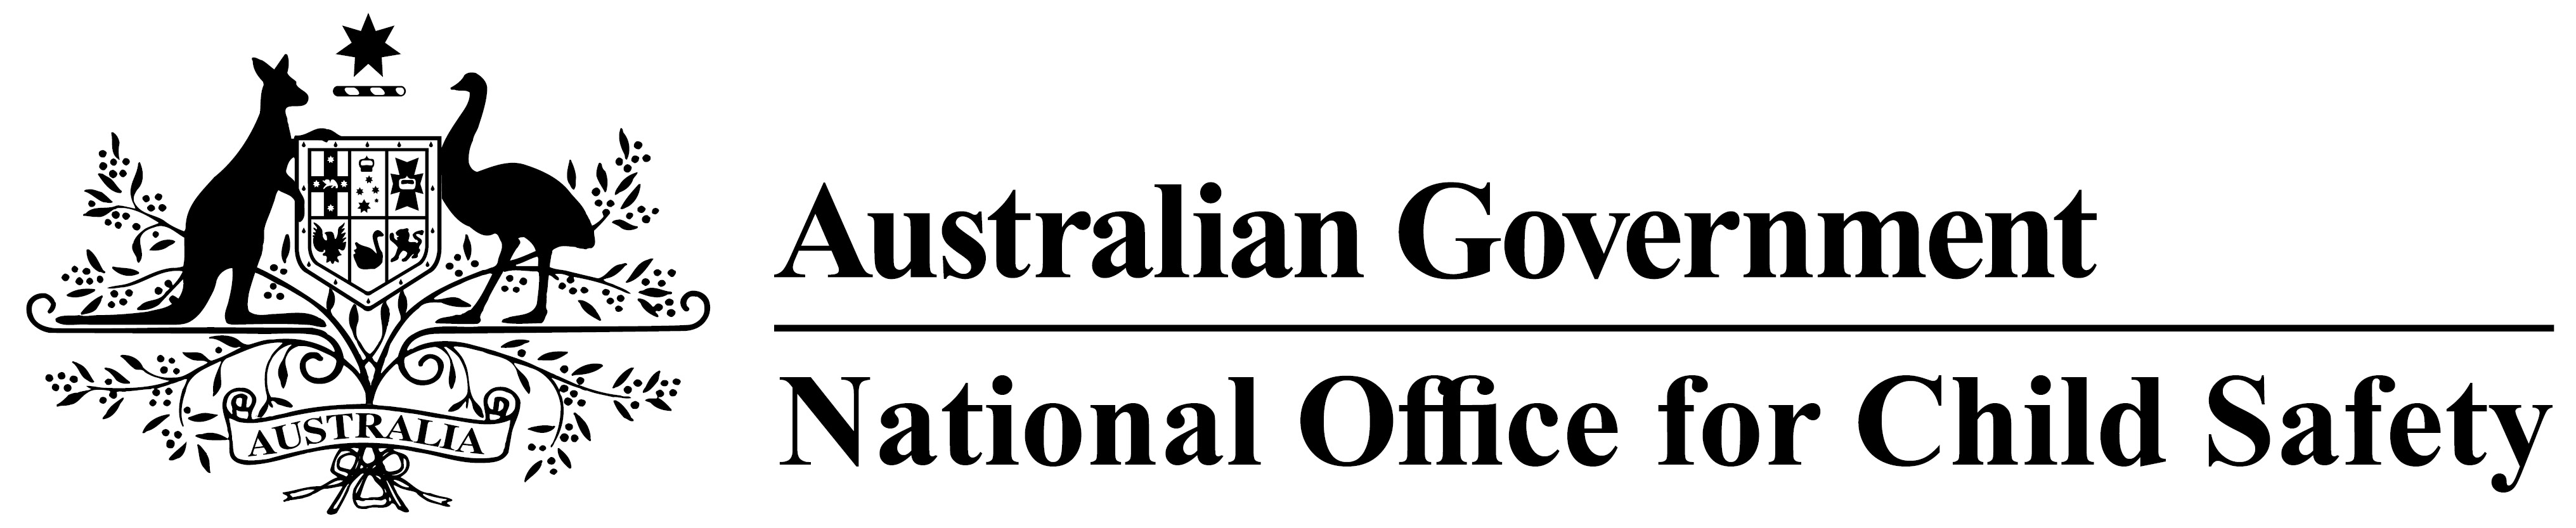 National Office for Child Safety - logo inline (1)